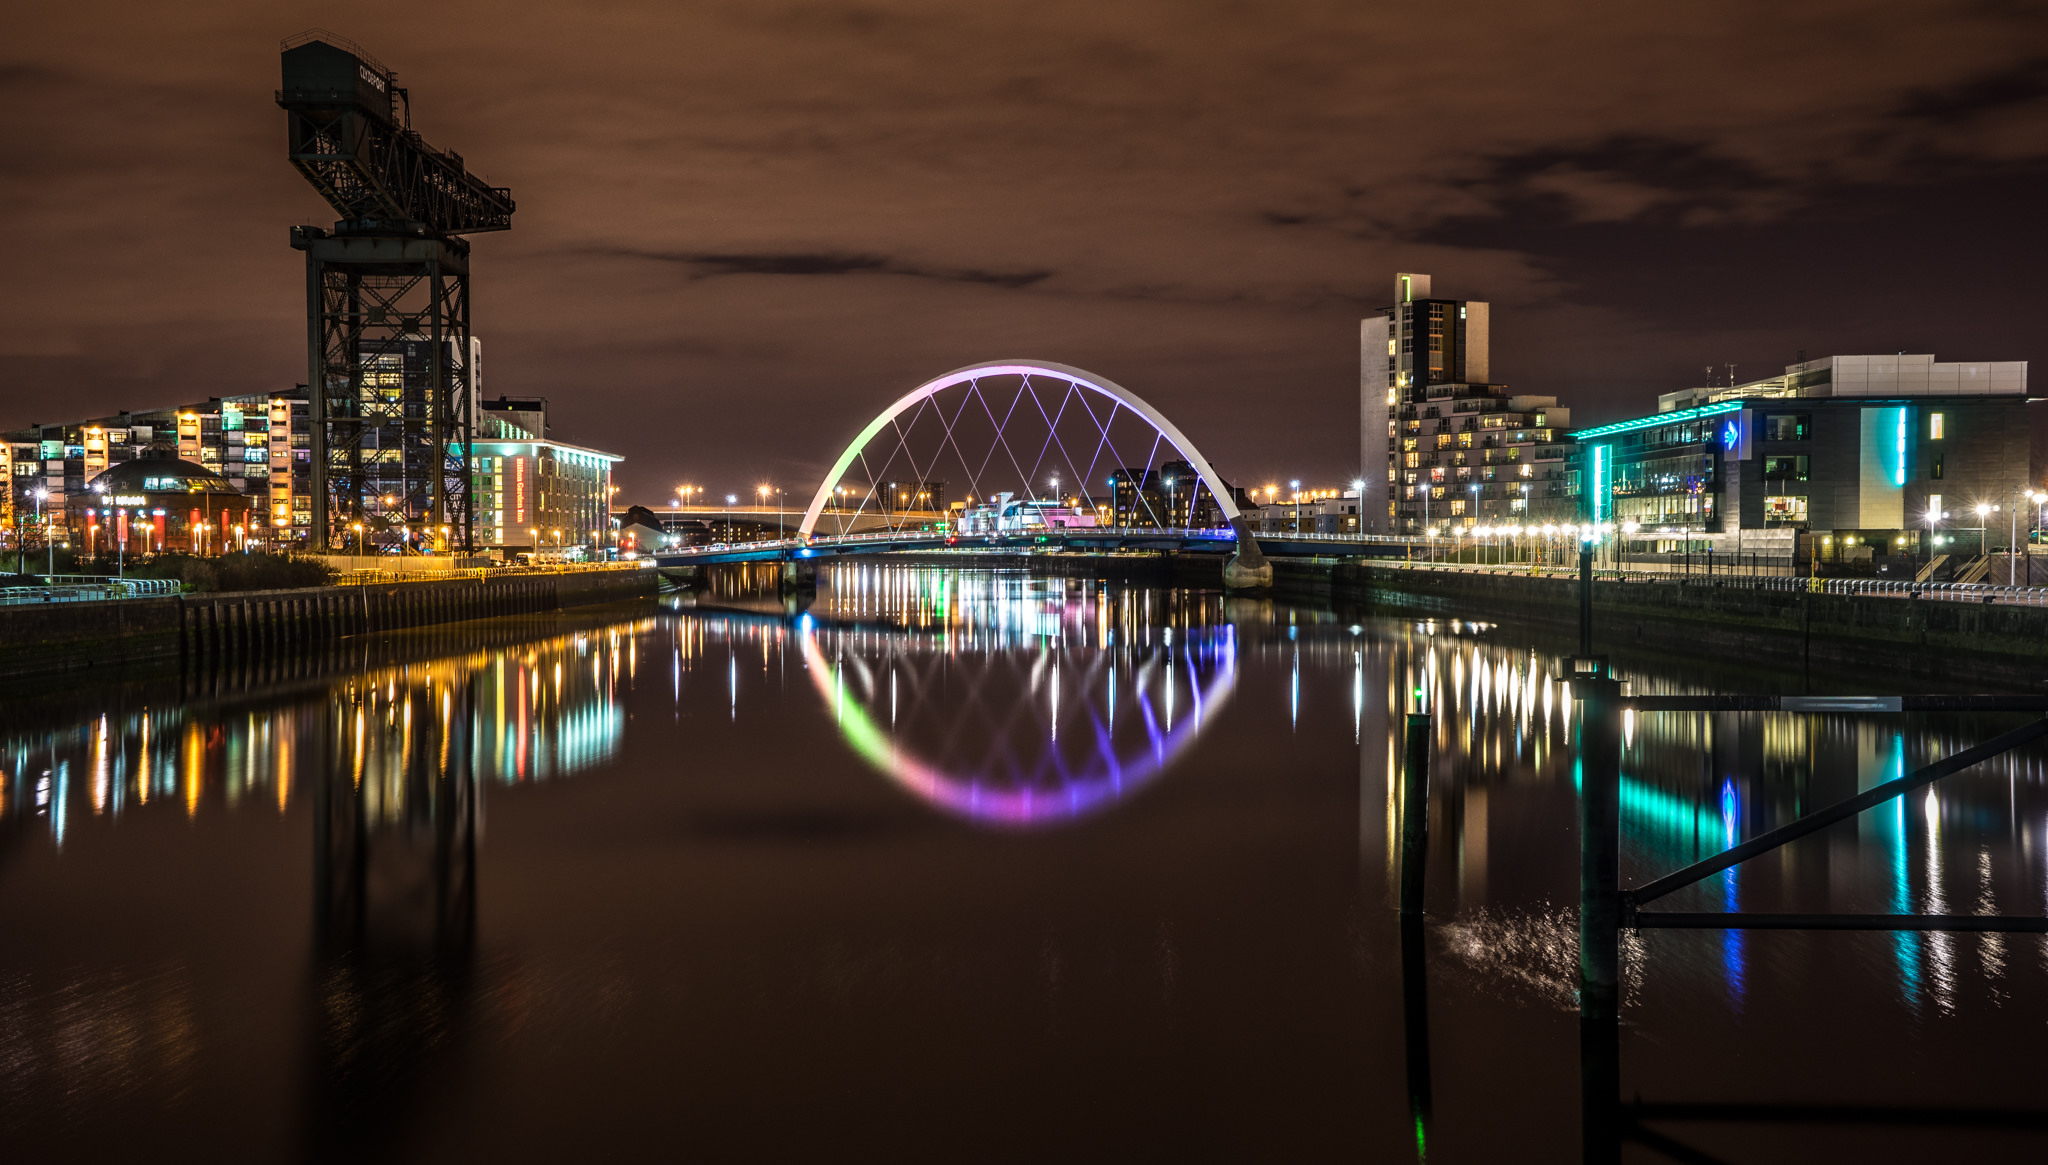 Glasgow skyline by Giuseppe Milo, Flickr (Creative Commons)